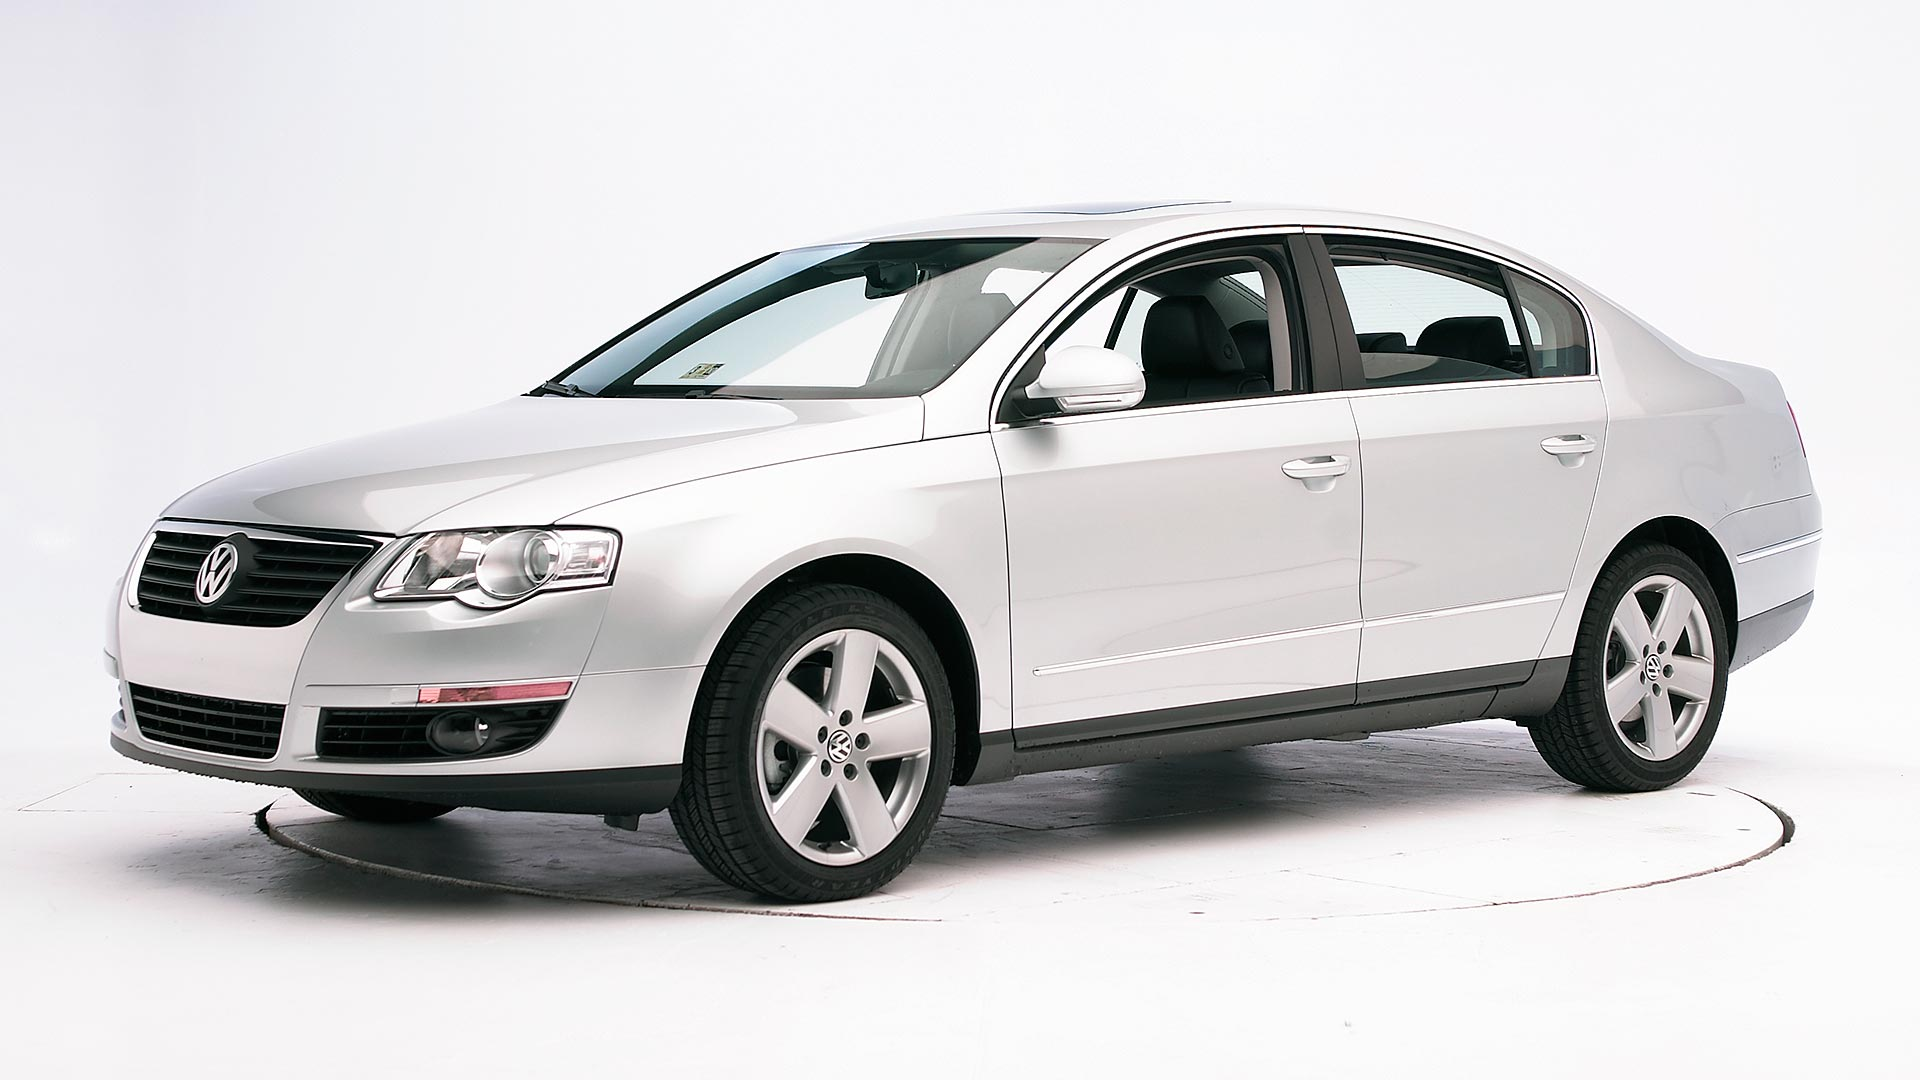 2009 Volkswagen Passat 4-door sedan